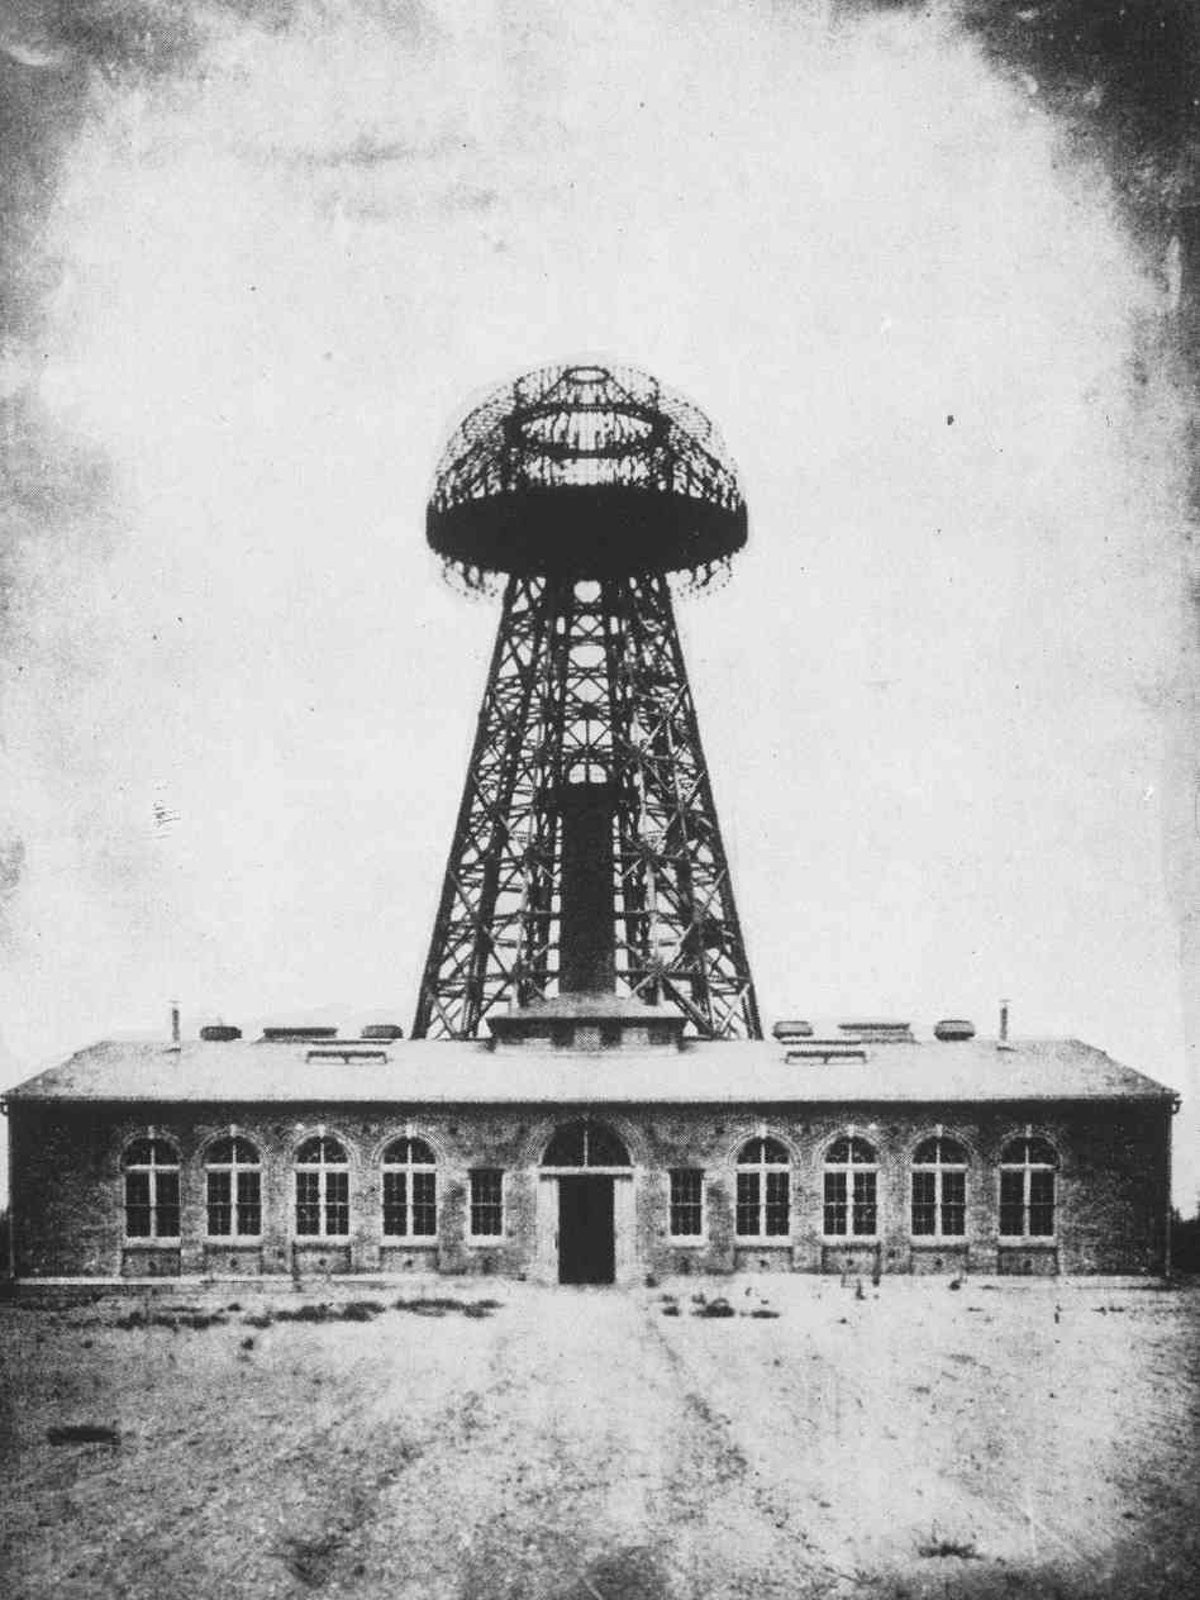 Tesla made several amazing claims about Wardenclyffe